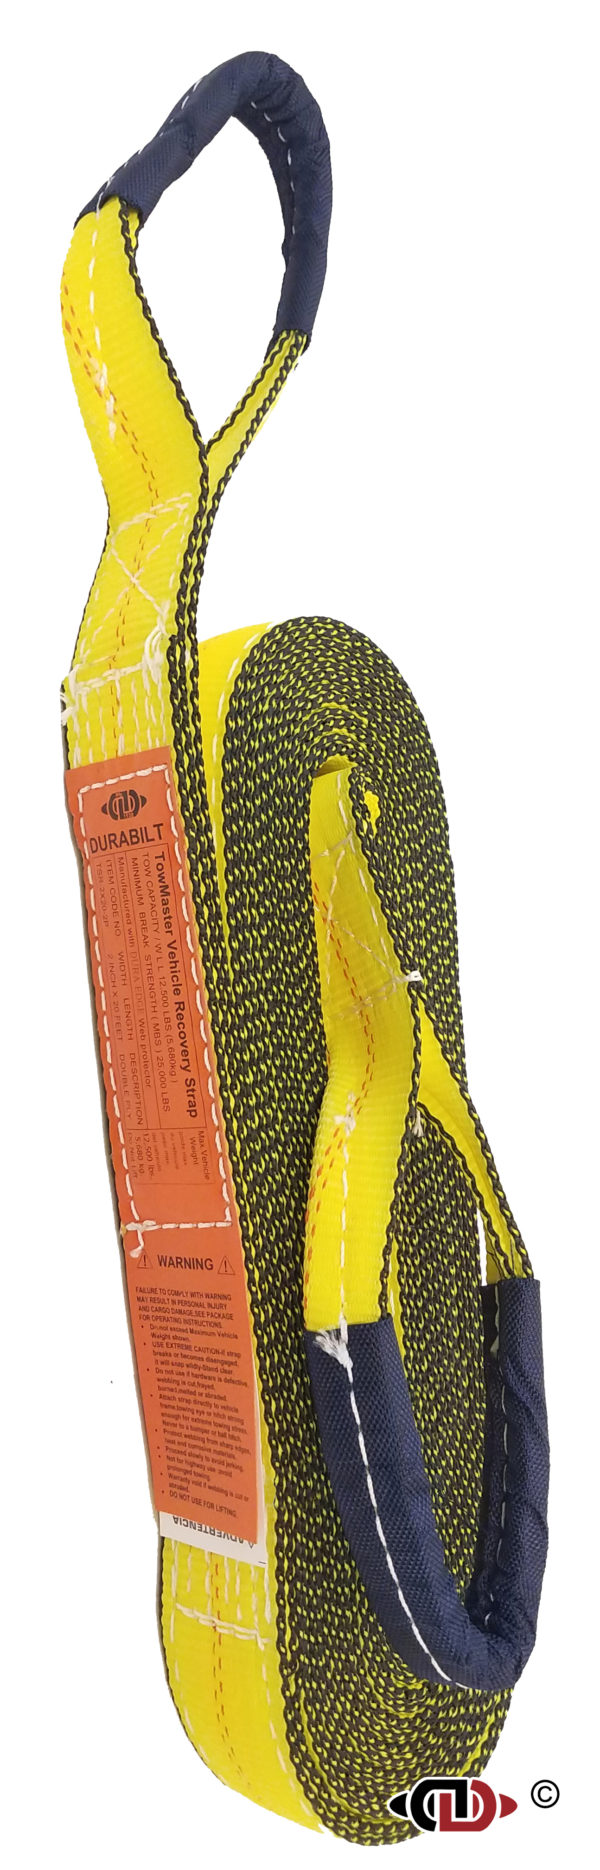 "2 Ply - 2"" x 20' Vehicle Recovery Tow Strap TSR-2x20-2P"